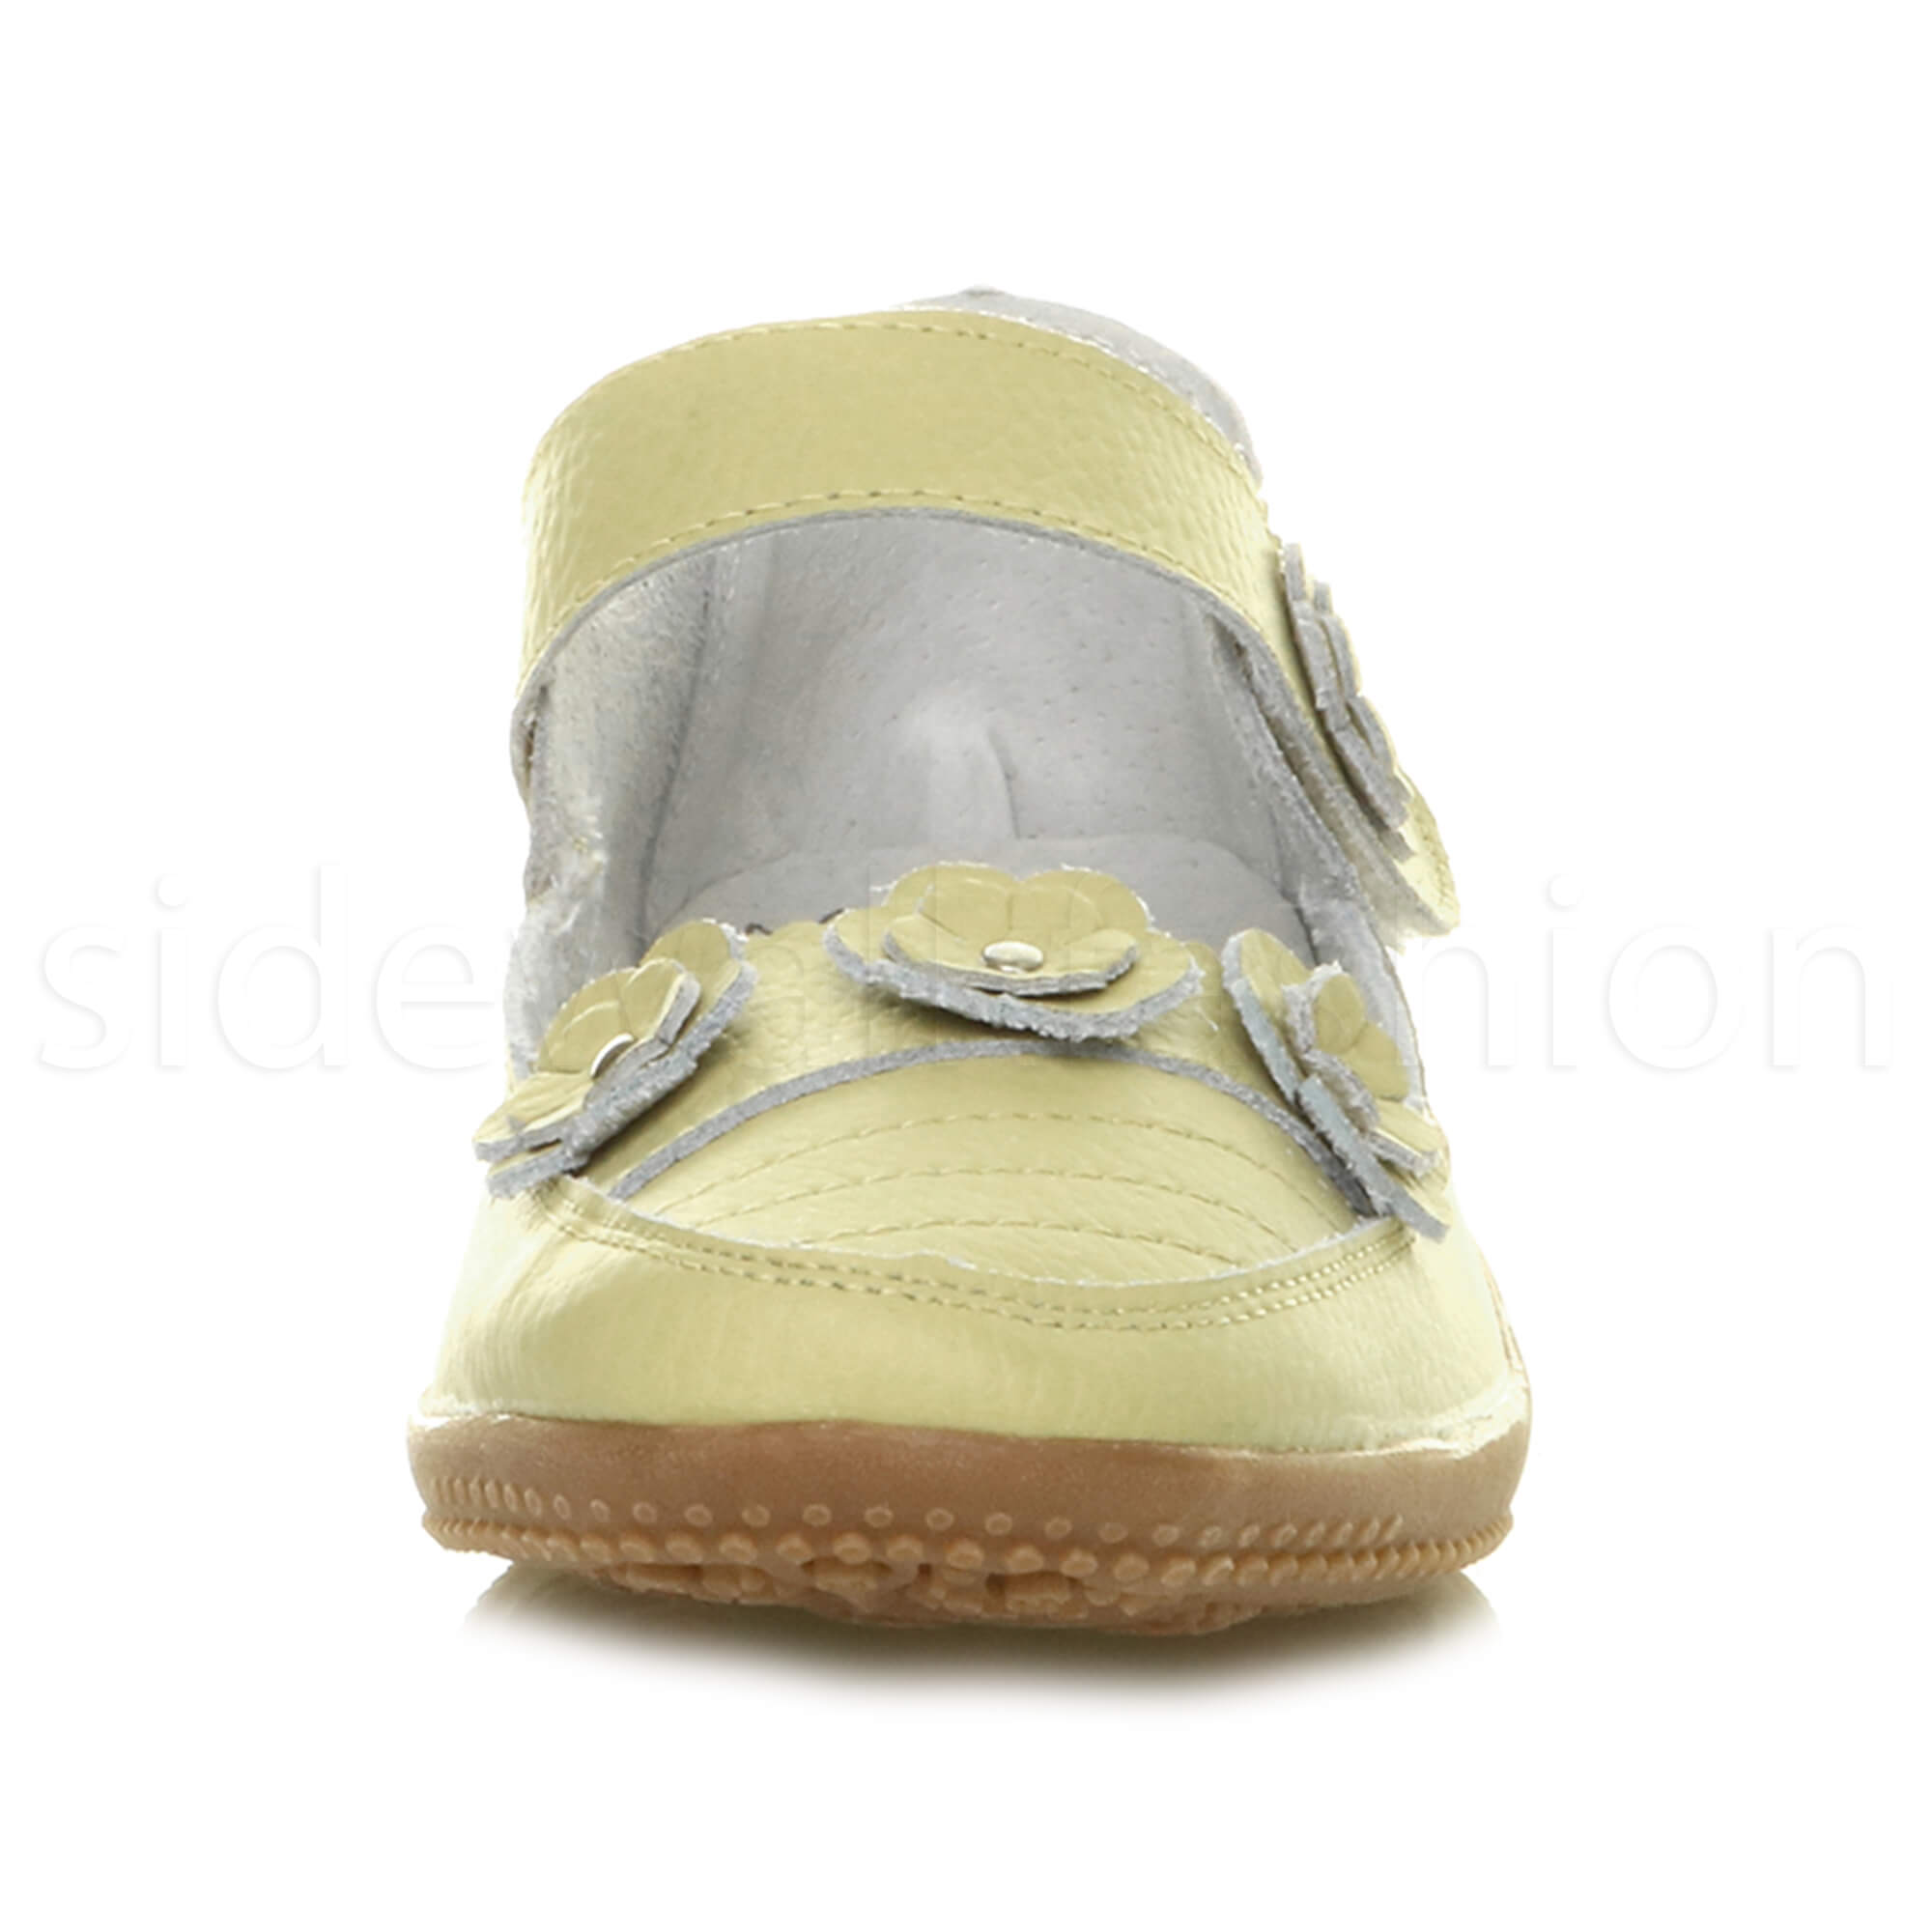 Womens-ladies-leather-comfort-walking-casual-sandals-mary-jane-strap-shoes-size thumbnail 46